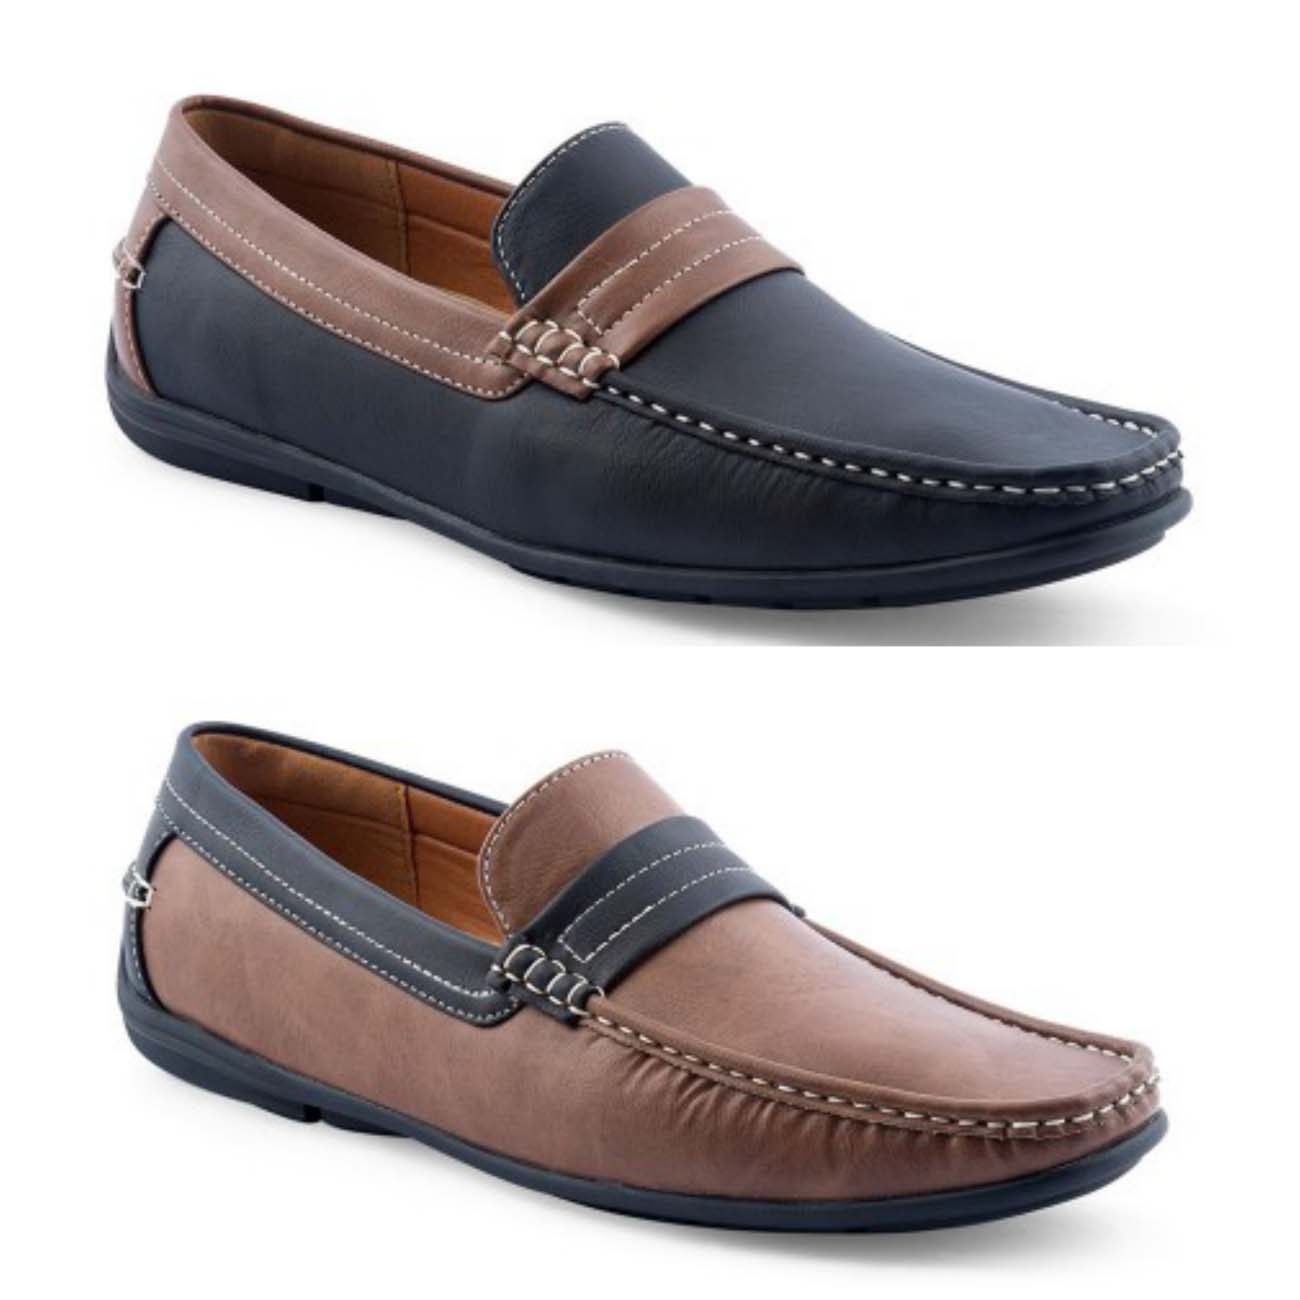 What Are The Best Winter Shoes For A Man